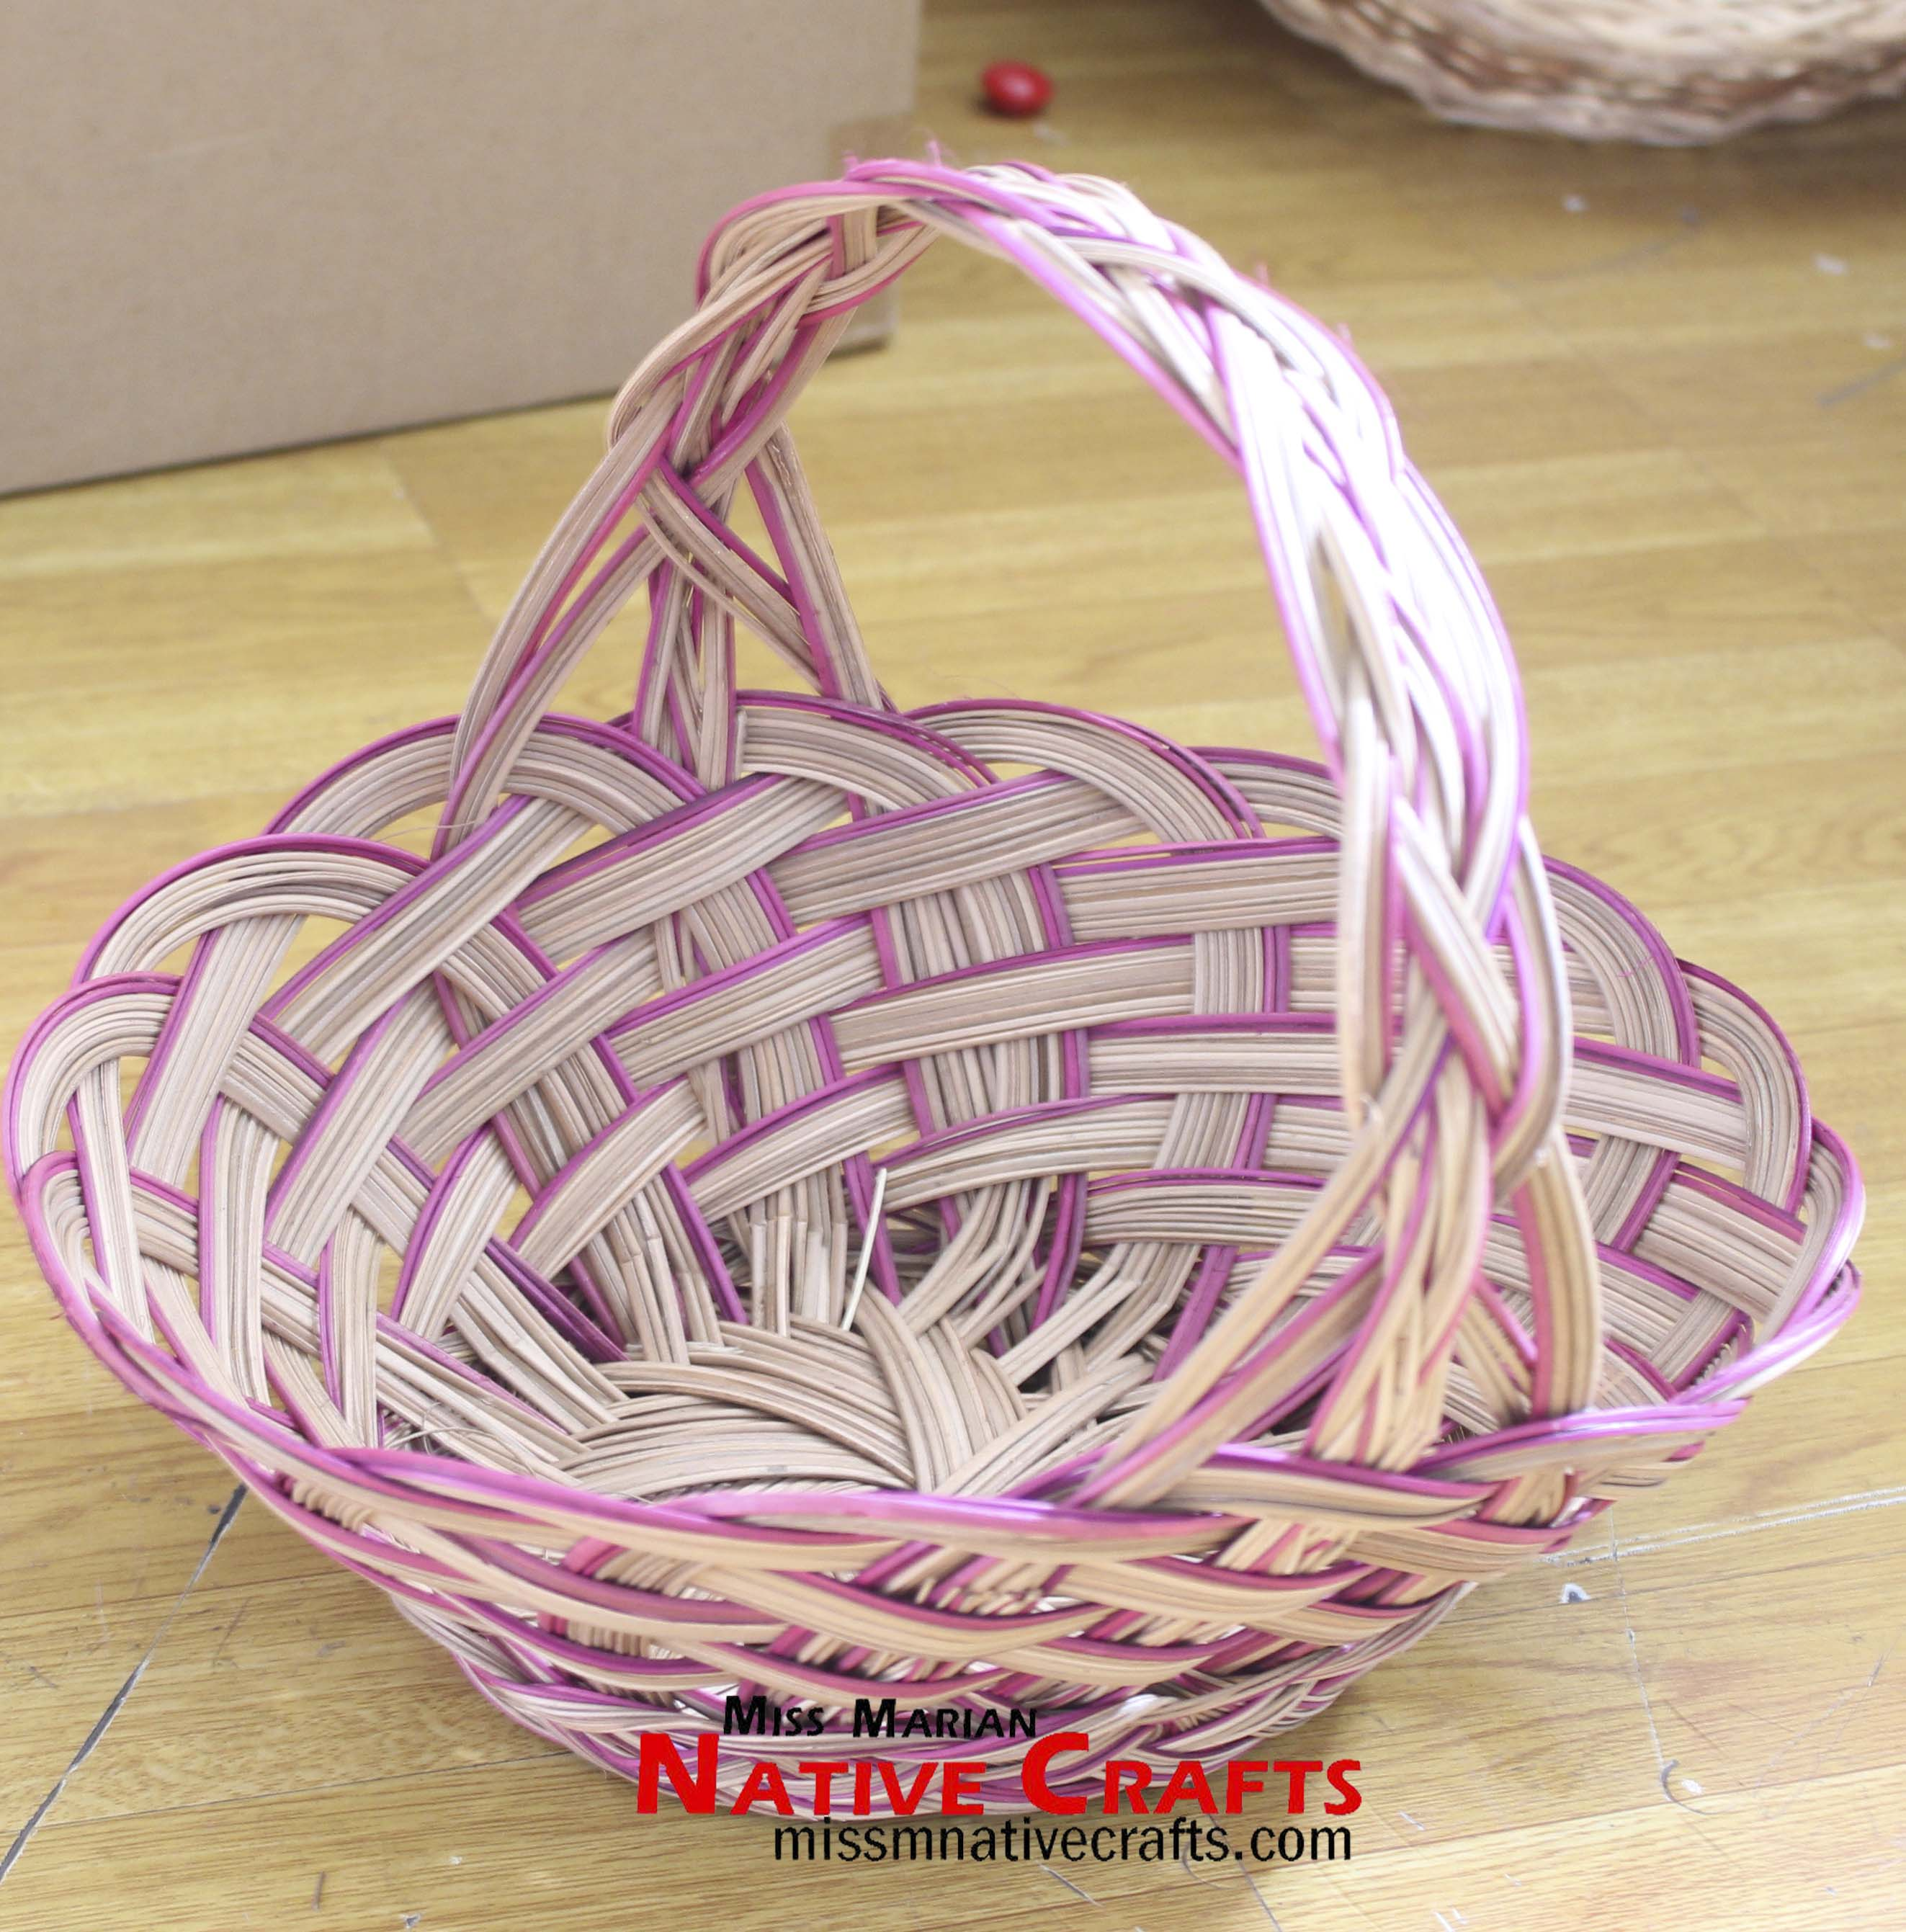 Coco Midrib Basket, Coco Midrib Supplier Philippines